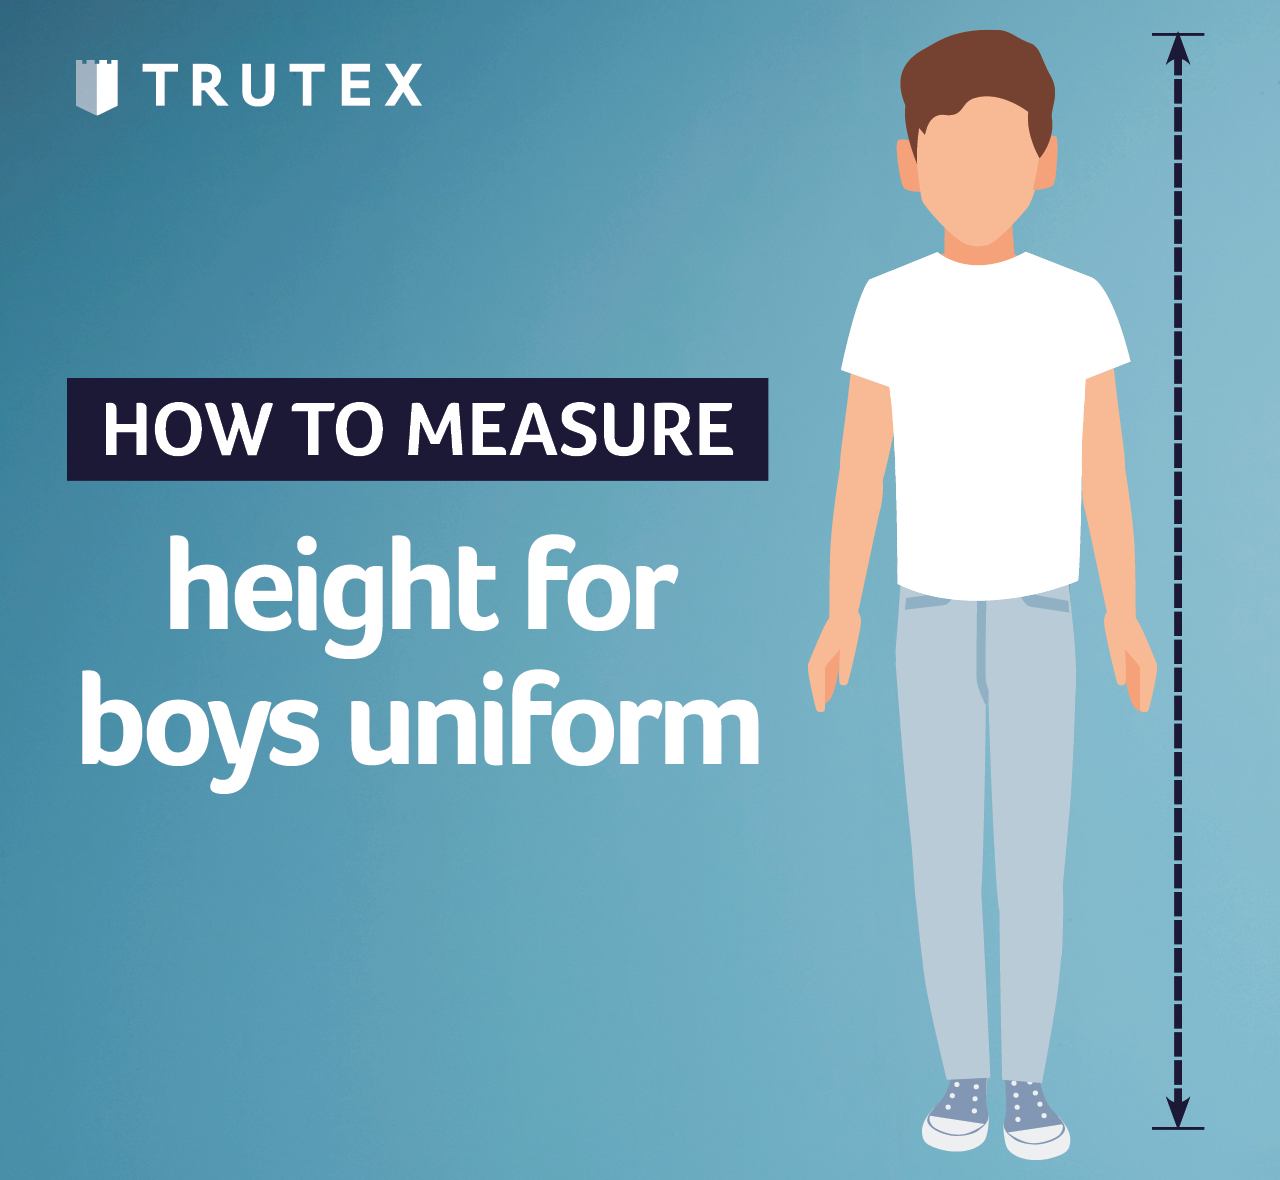 How to measure: height for boys uniform